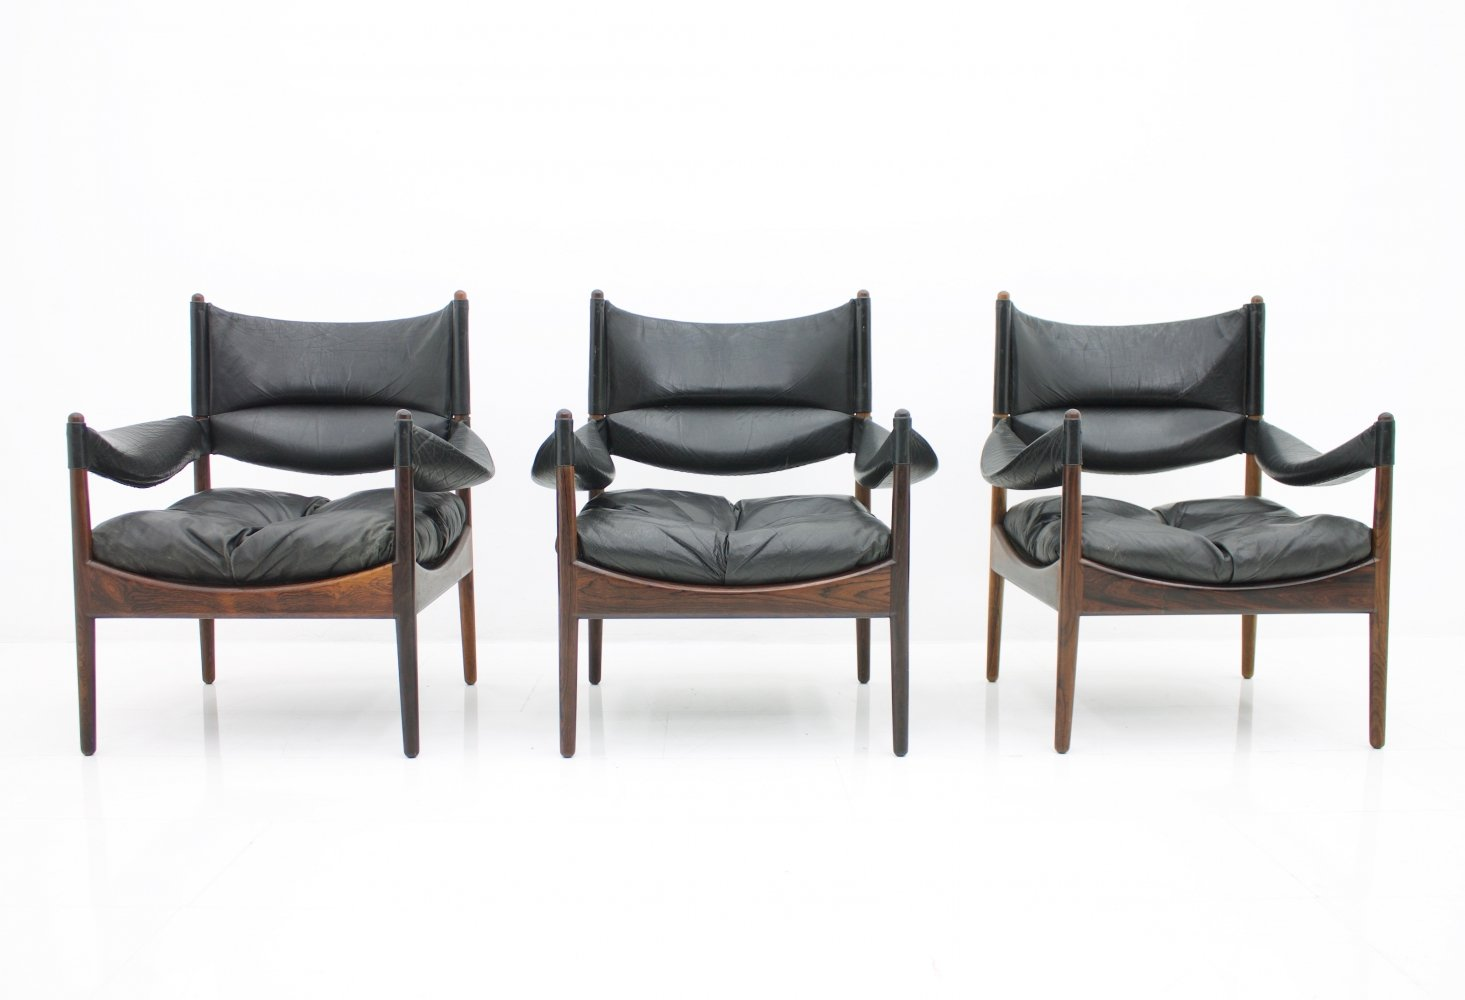 Modus Lounge Chairs by Kristian Solmer Vedel, 1963